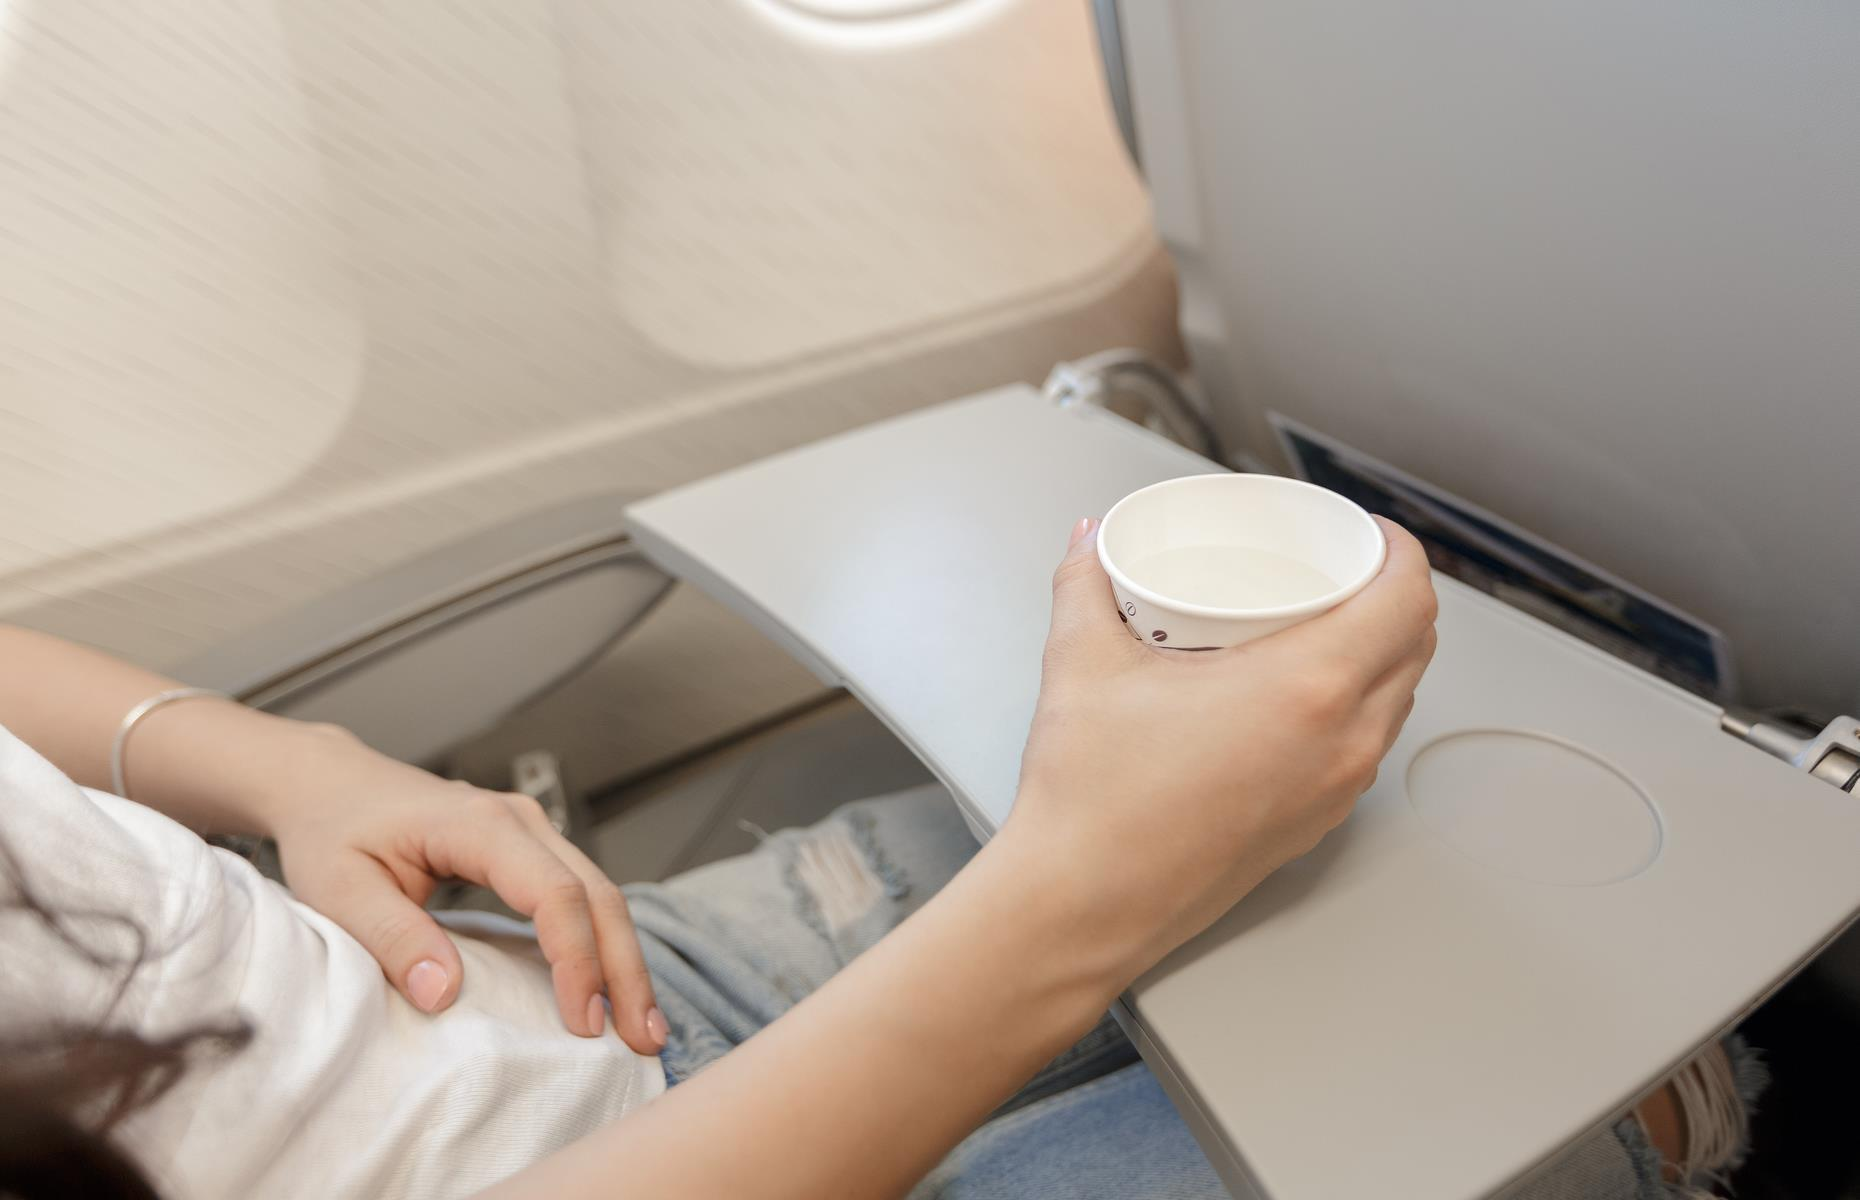 """Slide 19 of 63: """"From a safety perspective, [upright seats for take-off and landing] are for a 'just in case' emergency scenario,"""" says Leandi. """"If the seat's reclined, it's harder for you to get up and out of your seat, and that extra second per person can be a matter of life or death. Also bear in mind that a reclined seat, especially in economy class, impacts on the space the person behind you has. If you make it awkward for them to get out by reclining your seat, you're potentially risking their life in an emergency landing situation."""""""